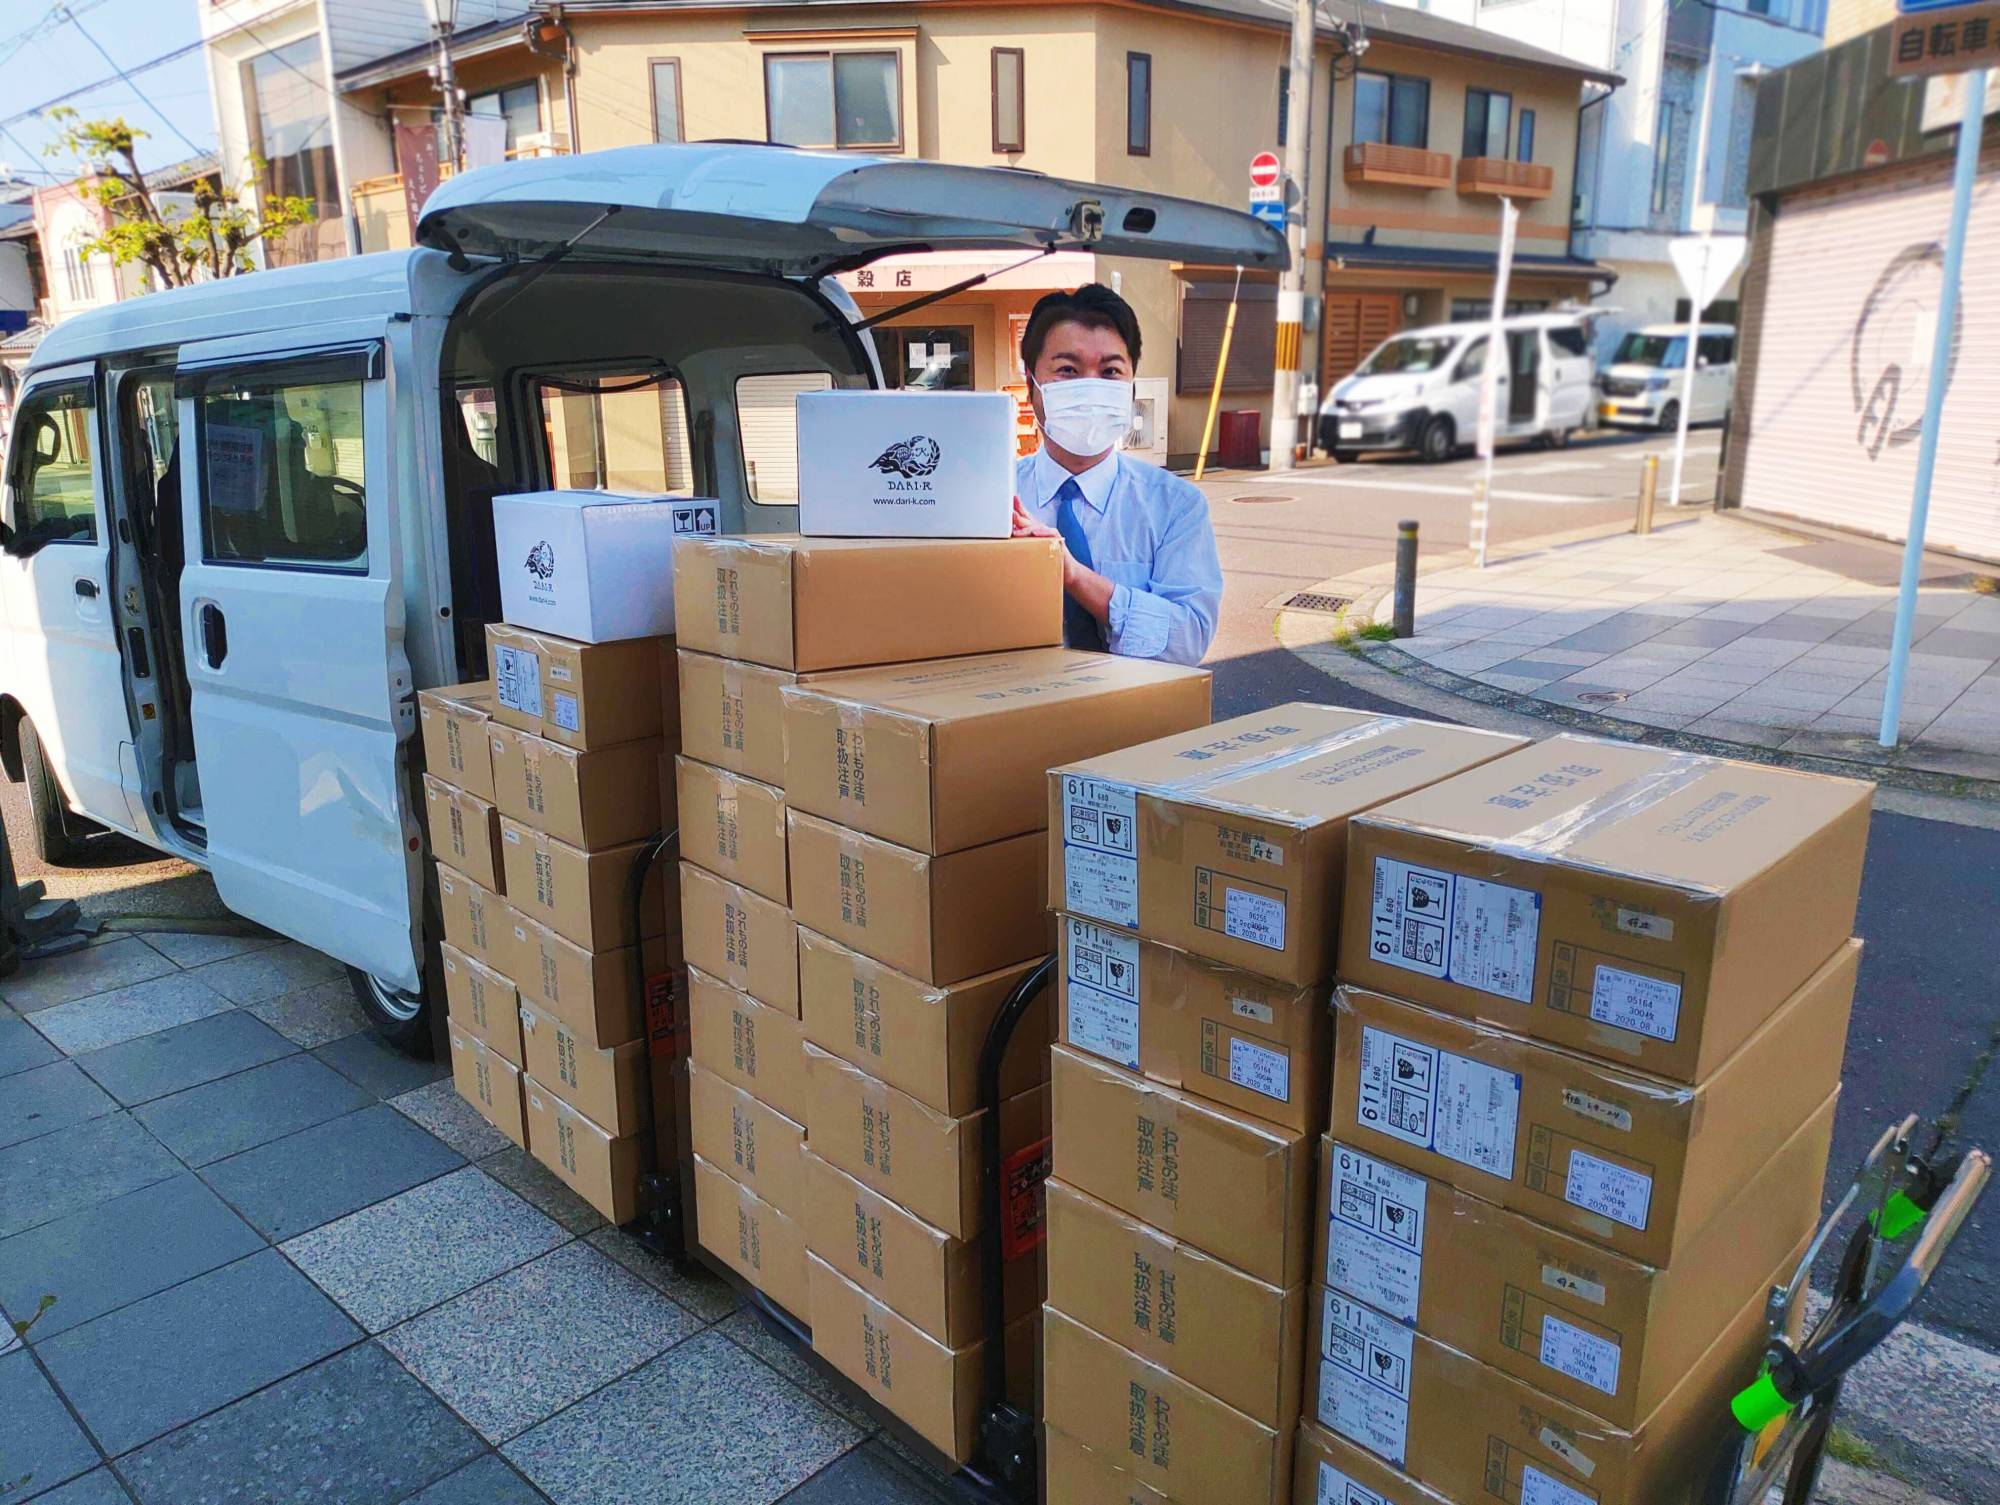 Keiichi Yoshino, president and CEO of Dari K Co., poses with boxes of chocolates bound for health care workers, in front of its main shop in Kyoto on April 30. | DARIK CO. / VIA KYODO